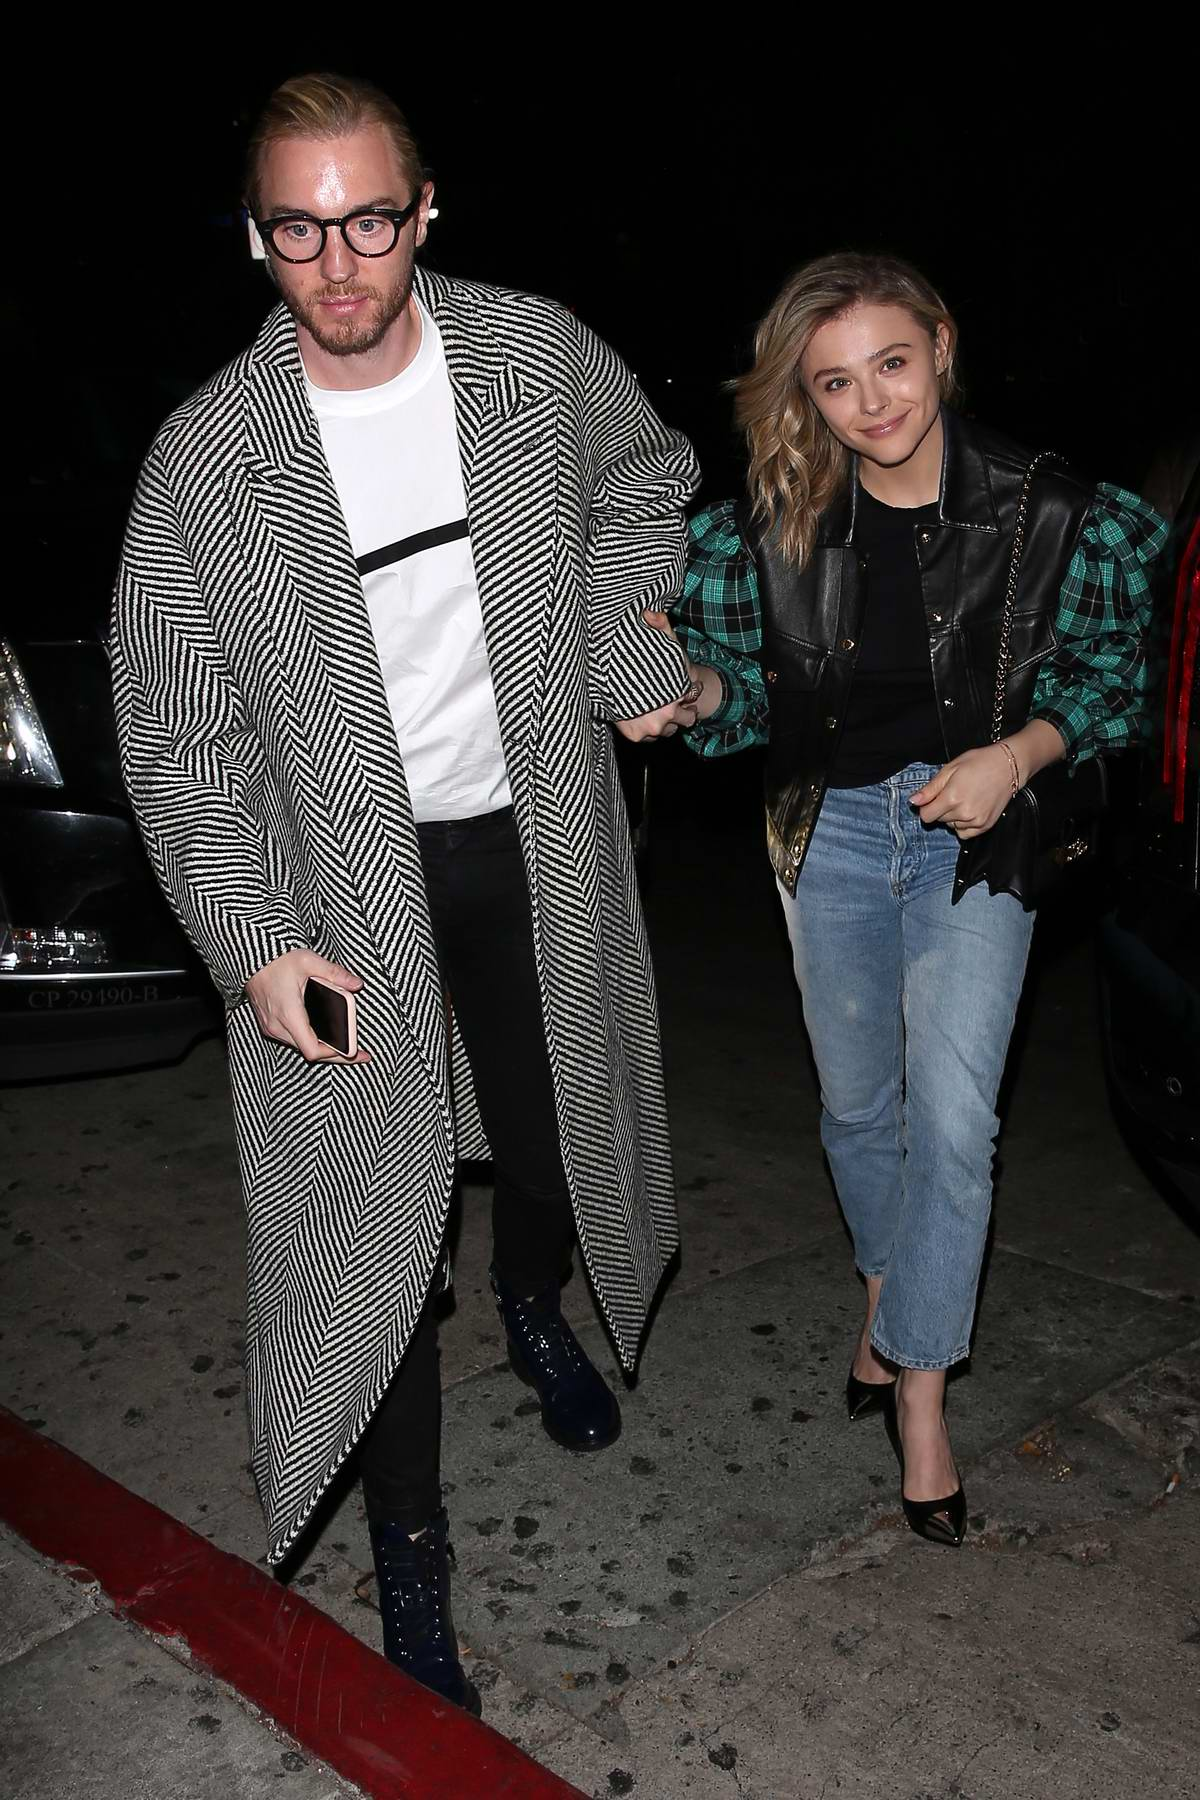 Chloe Grace Moretz and her brother Trevor arrives for a private 'Louis Vuitton' Dinner in West Hollywood, Los Angeles